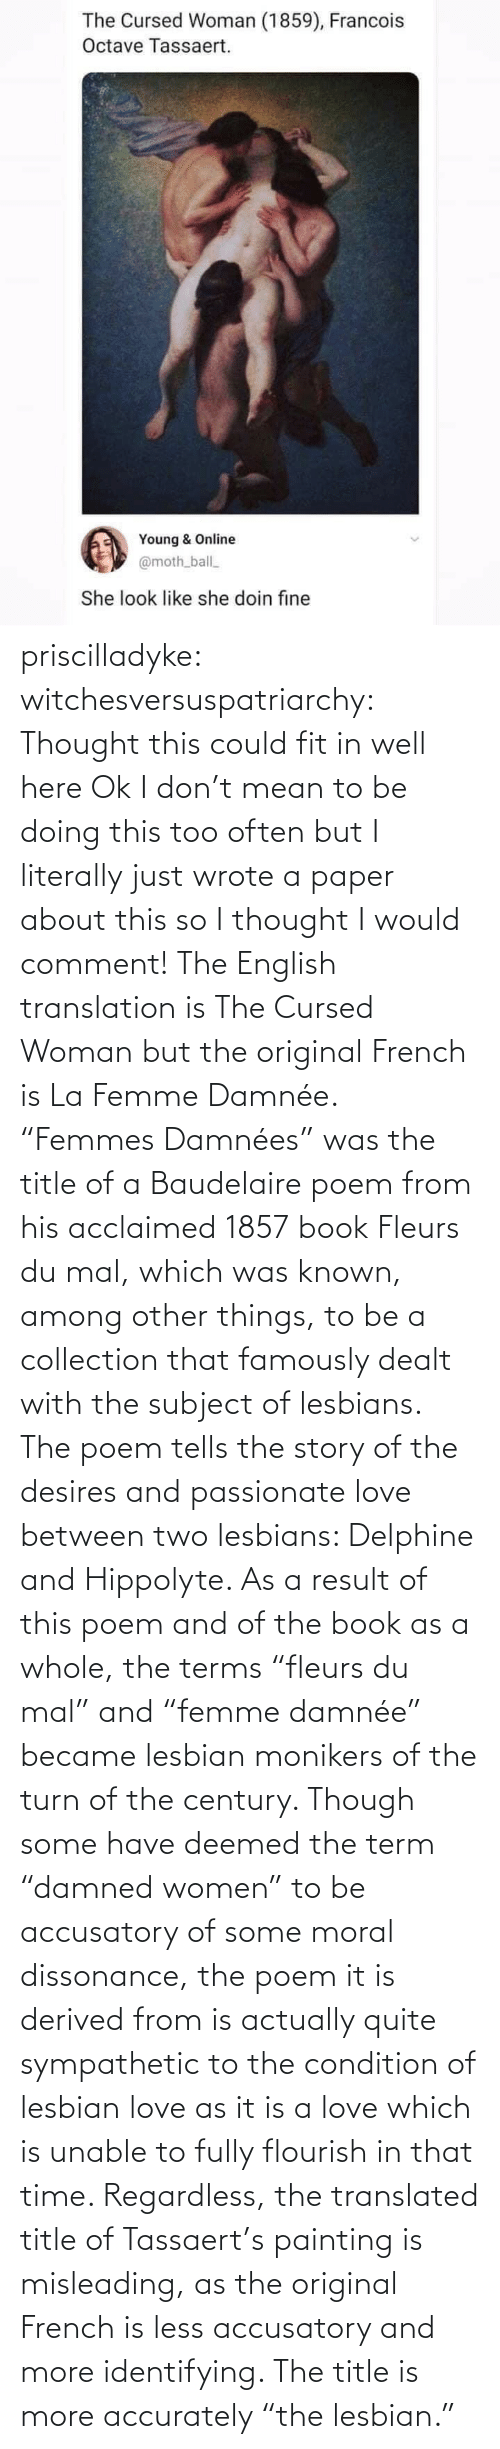 "Love, Tumblr, and Blog: priscilladyke:  witchesversuspatriarchy: Thought this could fit in well here   Ok I don't mean to be doing this too often but I literally just wrote a paper about this so I thought I would comment! The English translation is The Cursed Woman but the original French is La Femme Damnée. ""Femmes Damnées"" was the title of a Baudelaire poem from his acclaimed 1857 book Fleurs du mal, which was known, among other things, to be a collection that famously dealt with the subject of lesbians. The poem tells the story of the desires and passionate love between two lesbians:  Delphine and Hippolyte. As a result of this poem and of the book as a whole, the terms ""fleurs du mal"" and ""femme damnée"" became lesbian monikers of the turn of the century. Though some have deemed the term ""damned women"" to be accusatory of some moral dissonance, the poem it is derived from is actually quite sympathetic to the condition of lesbian love as it is a love which is unable to fully flourish in that time. Regardless, the translated title of Tassaert's painting is misleading, as the original French is less accusatory and more identifying. The title is more accurately ""the lesbian."""